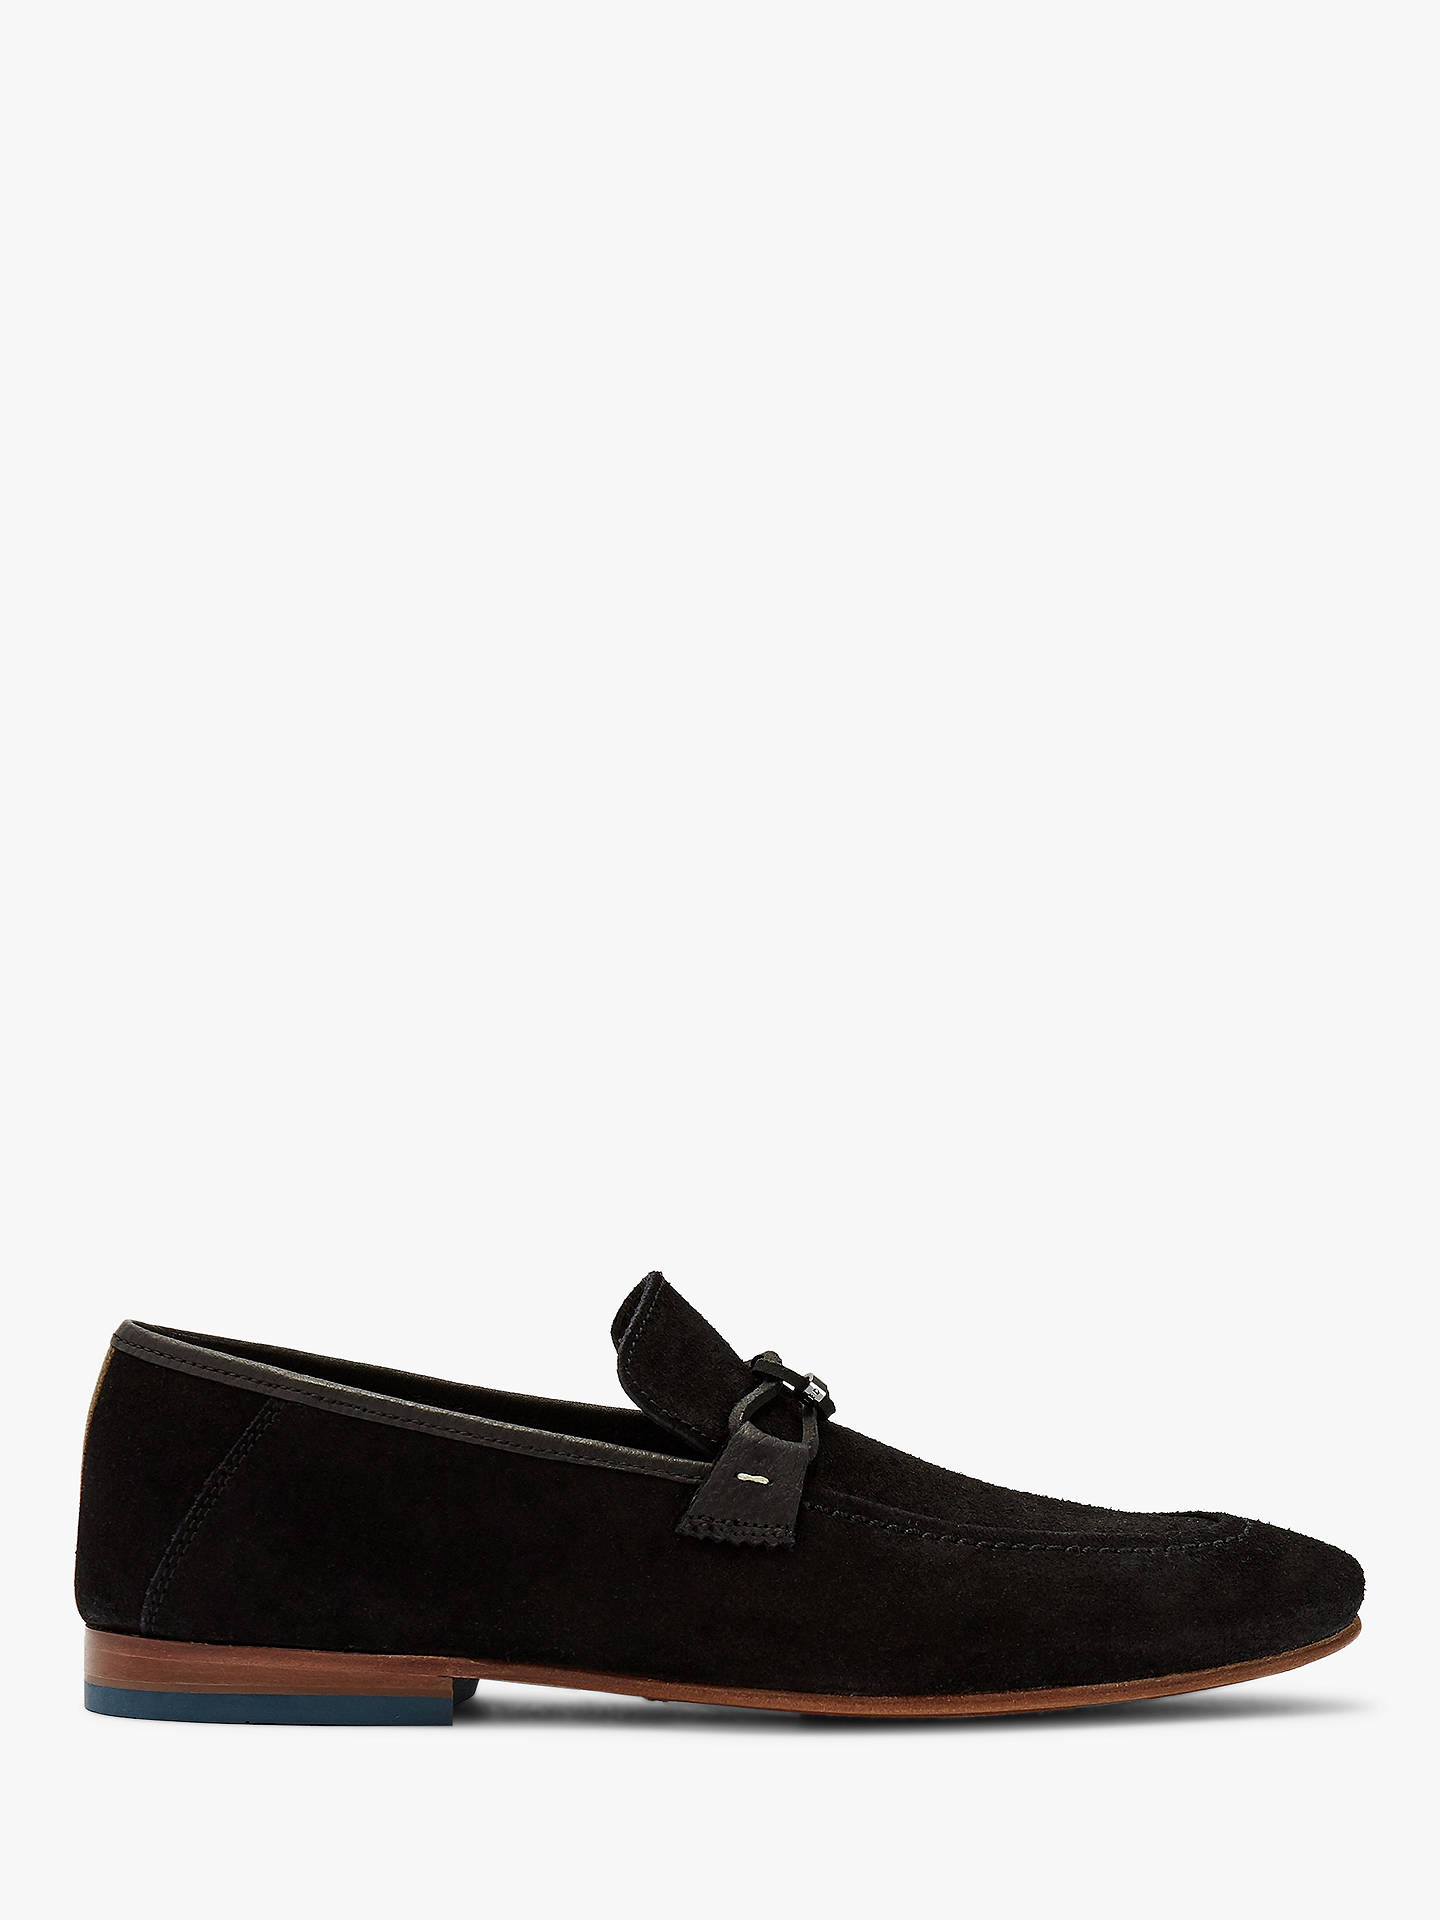 c0ffd5f4e4b51 Ted Baker Siblac Suede Loafers, Black at John Lewis & Partners